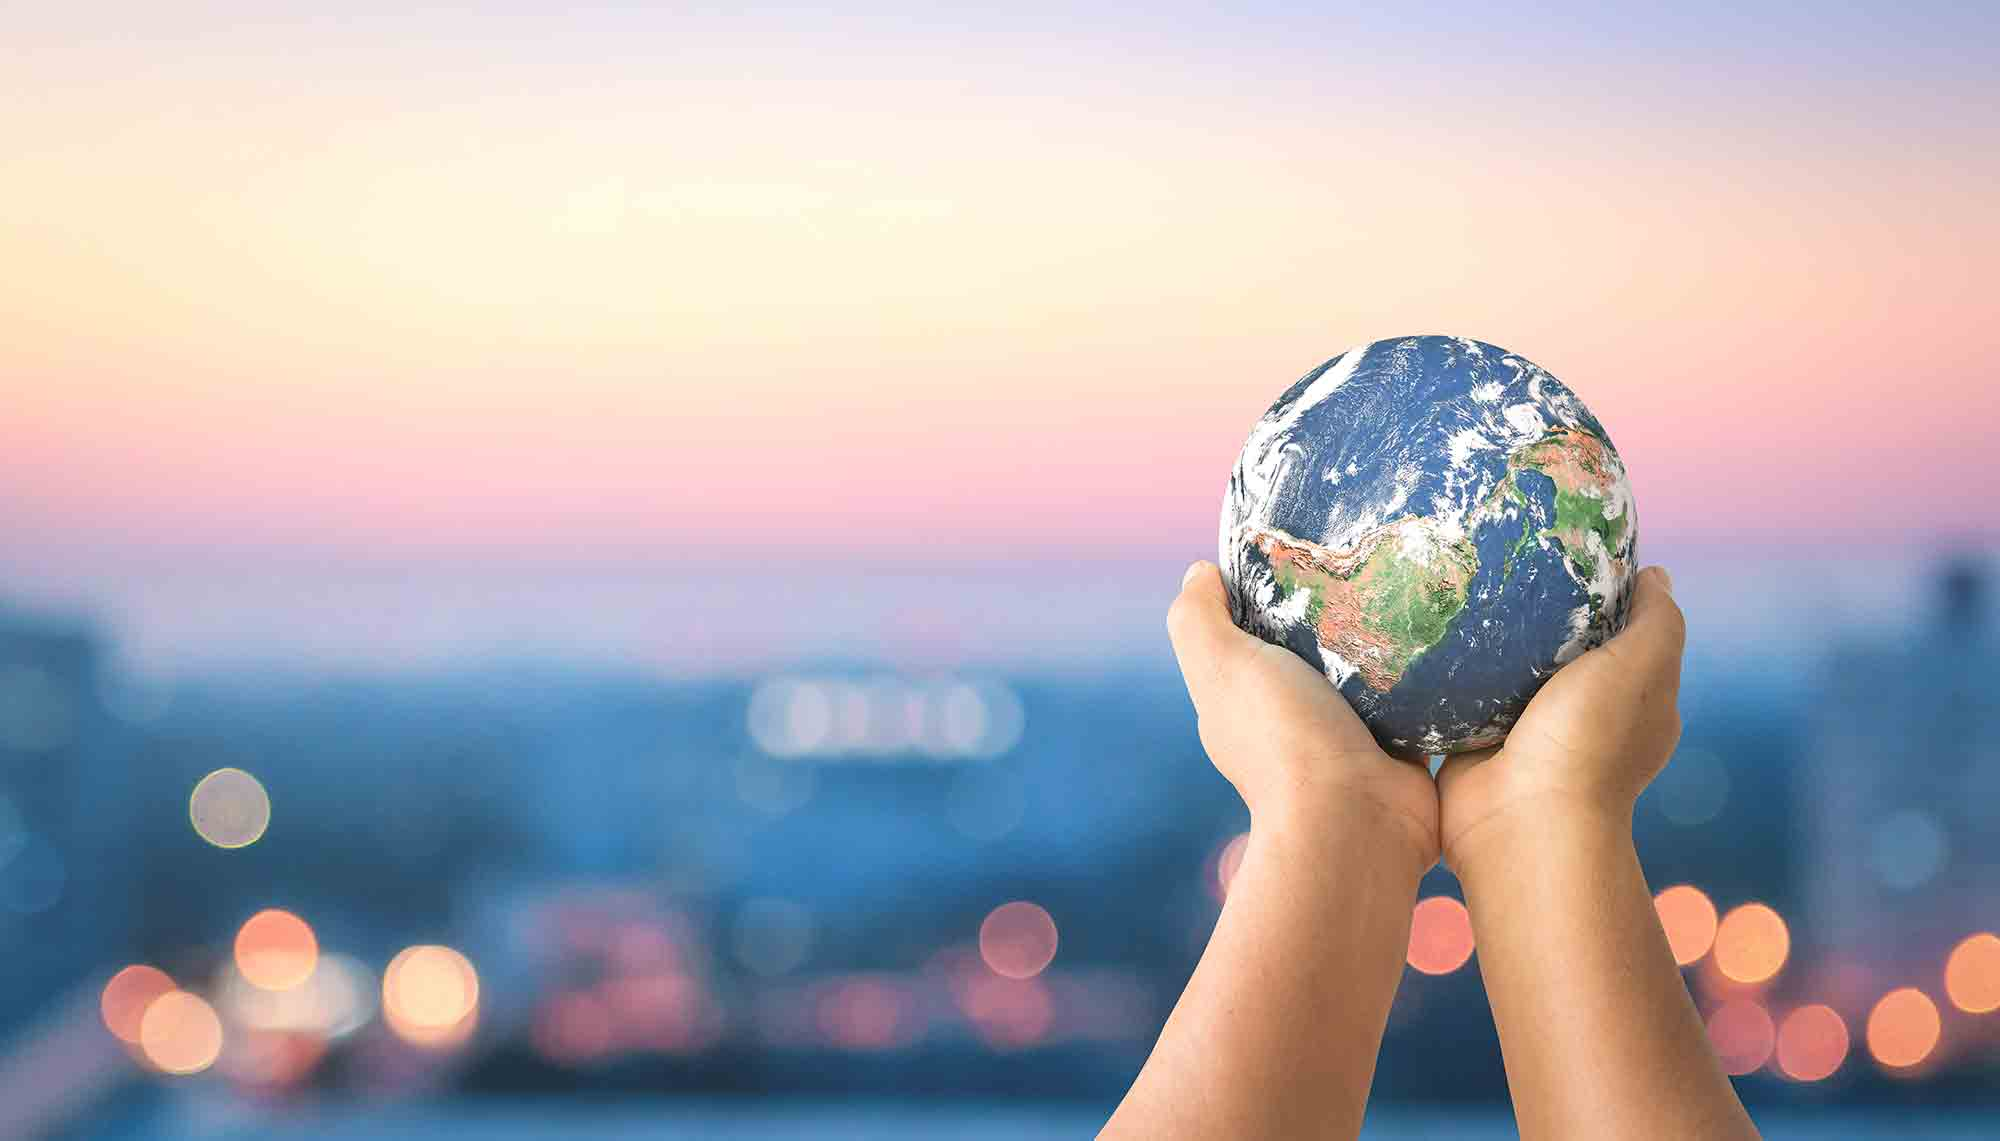 hands holding a globe sustainable great responsibility